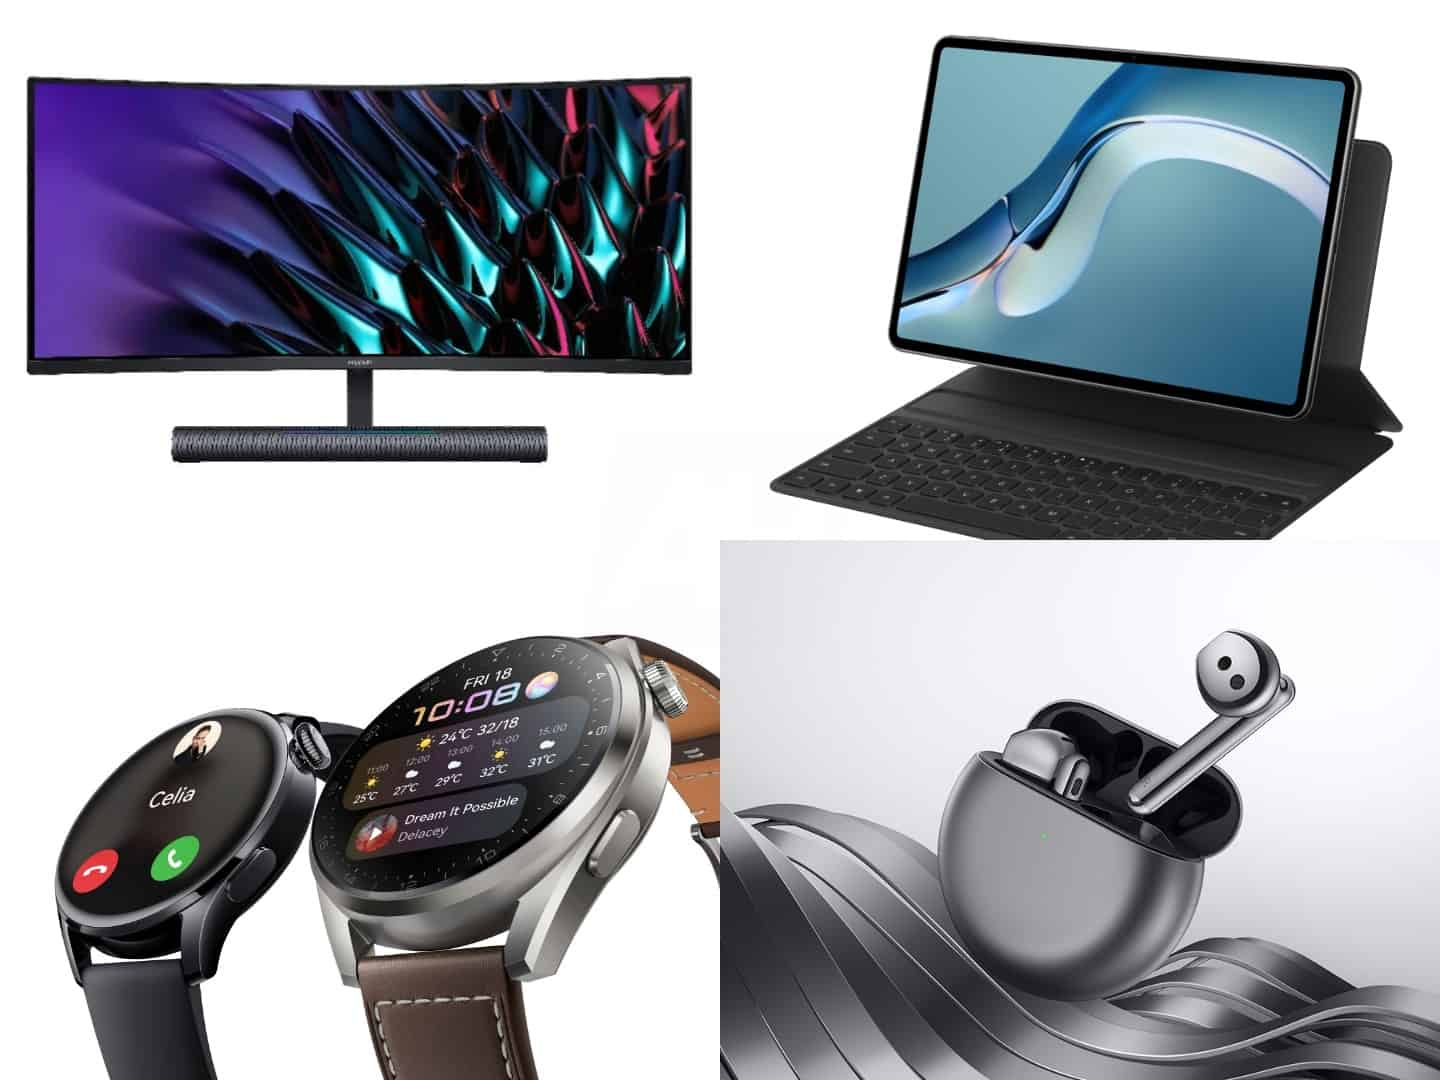 Check Out Promo Videos For All Products Huawei Announced Yesterday